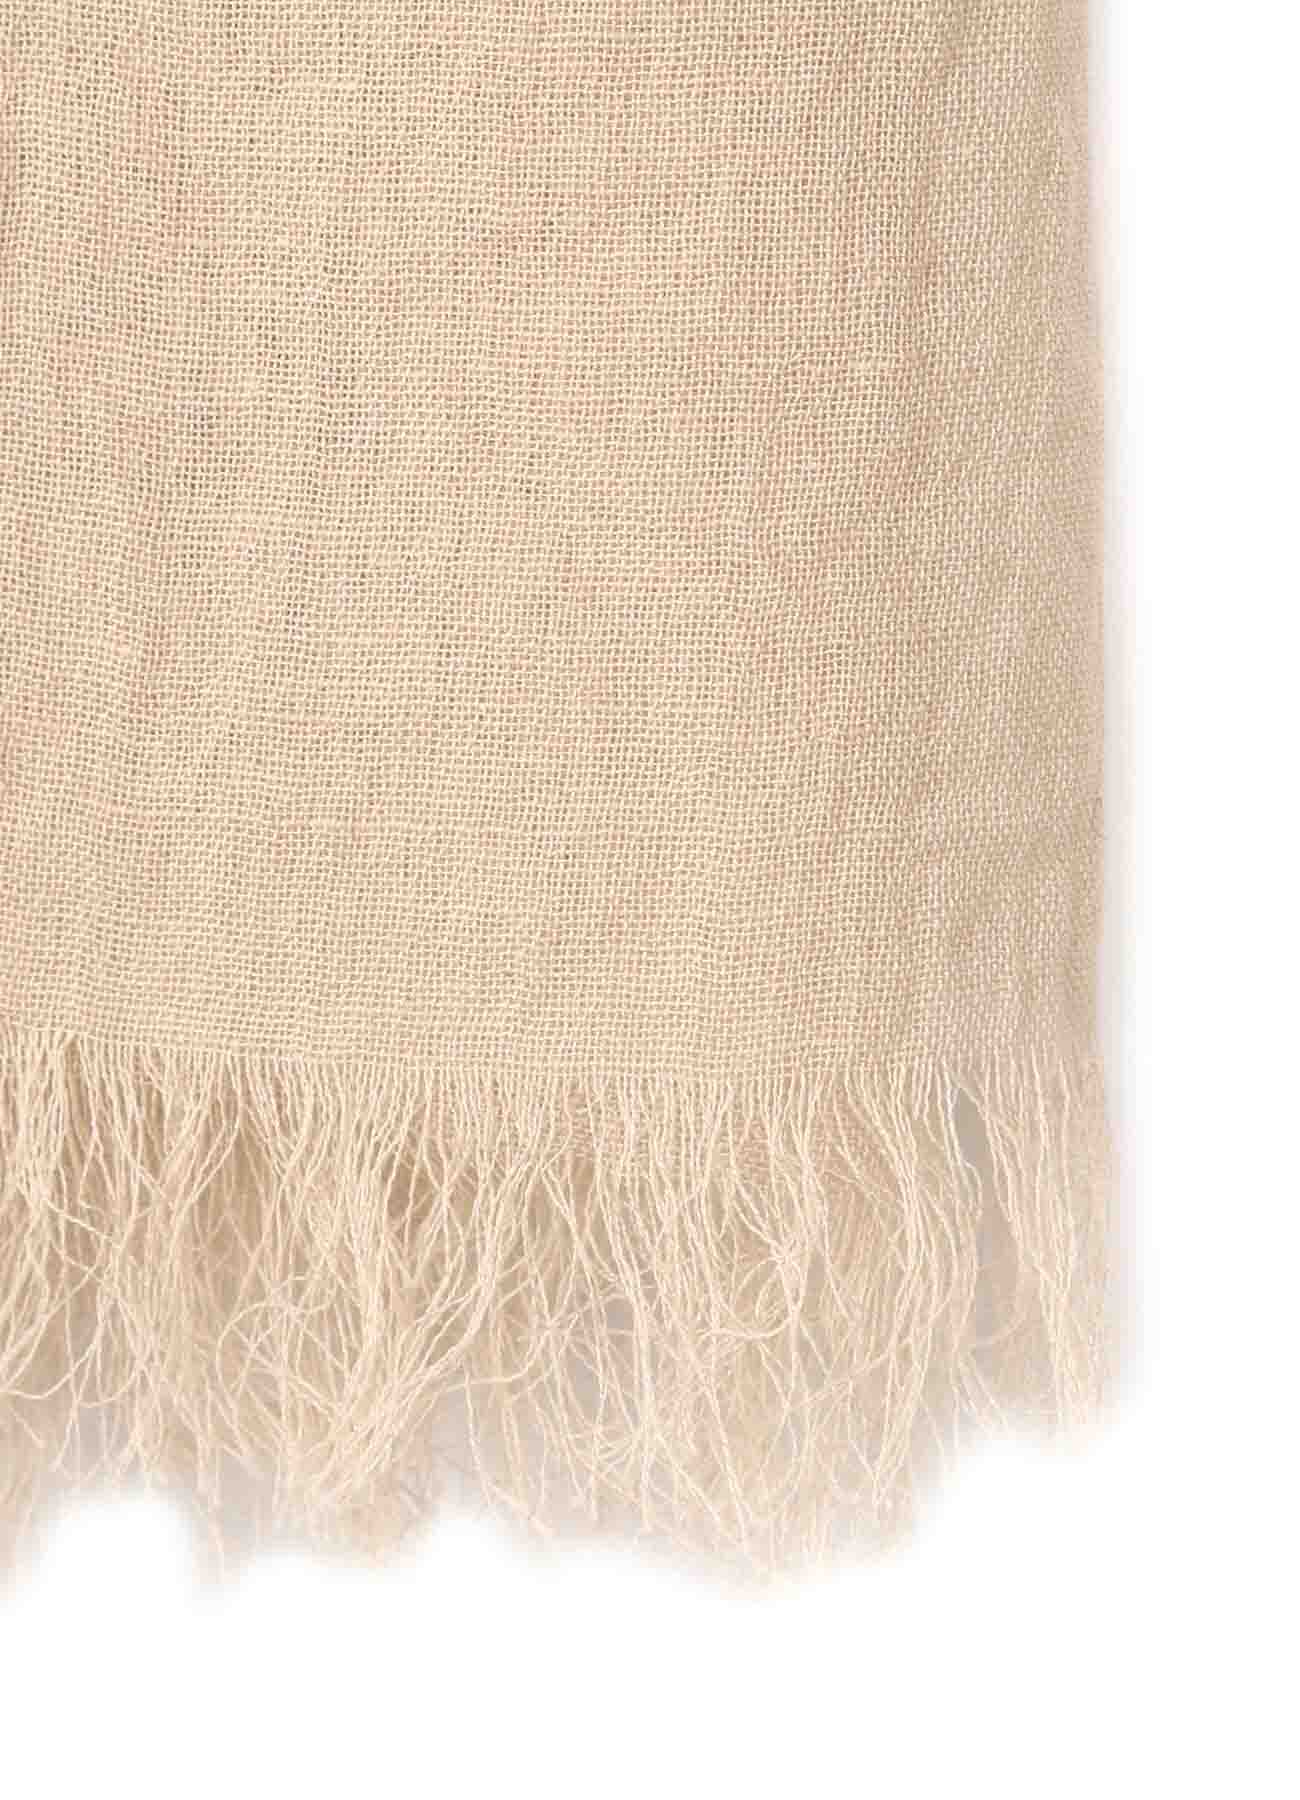 CODE EMBROIDERY SPIRAL STOLE